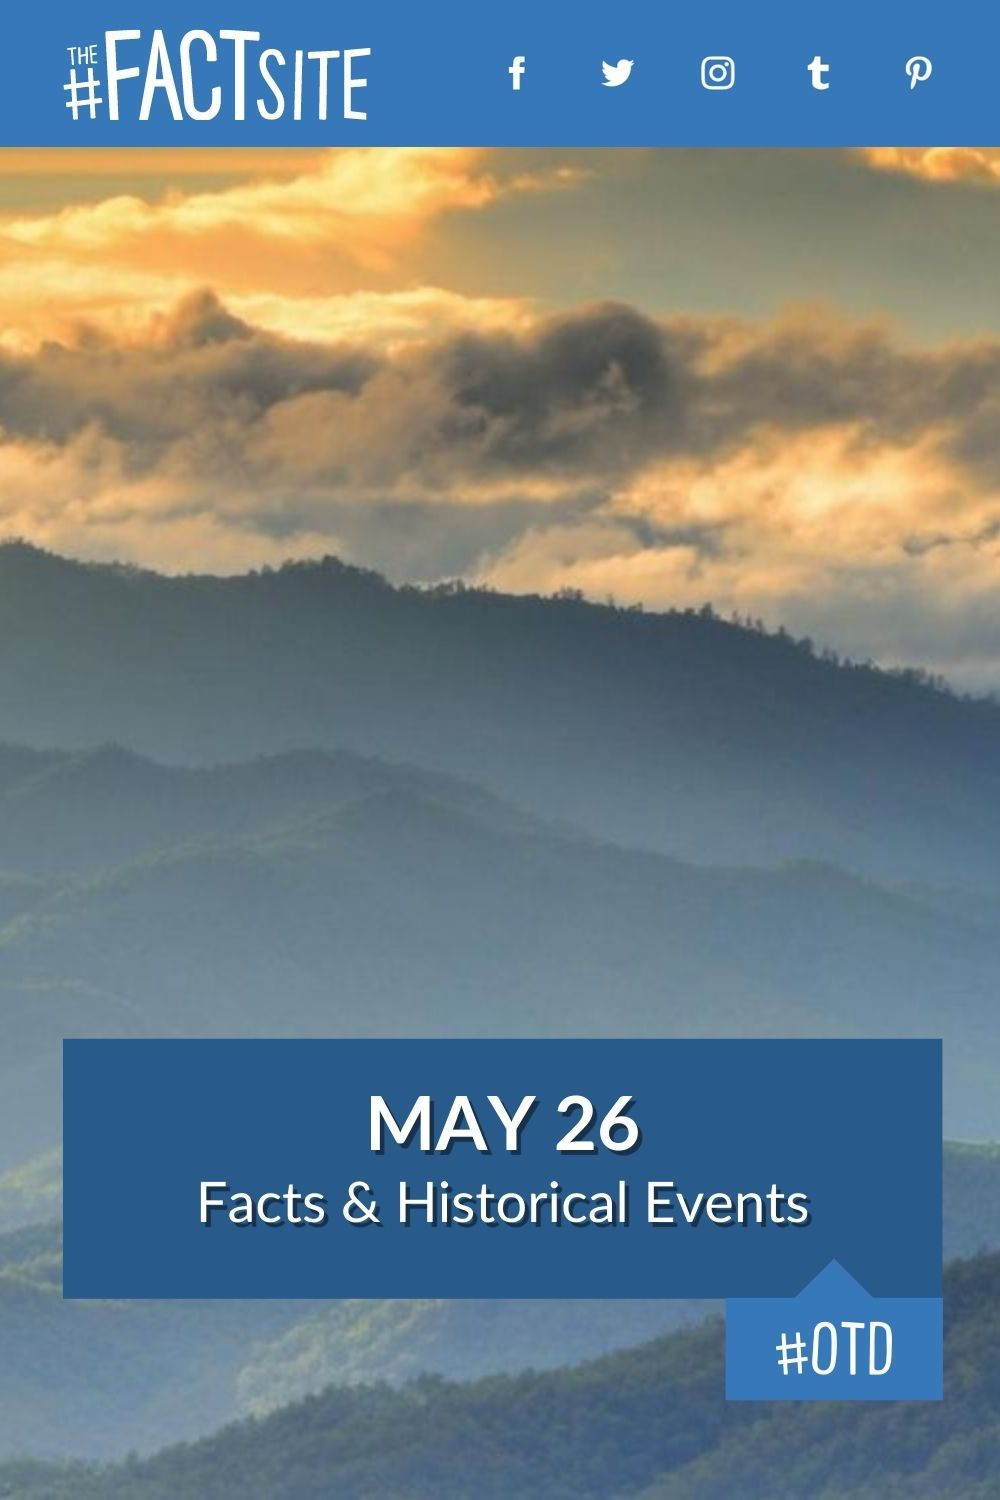 Facts & Historic Events That Happened on May 26